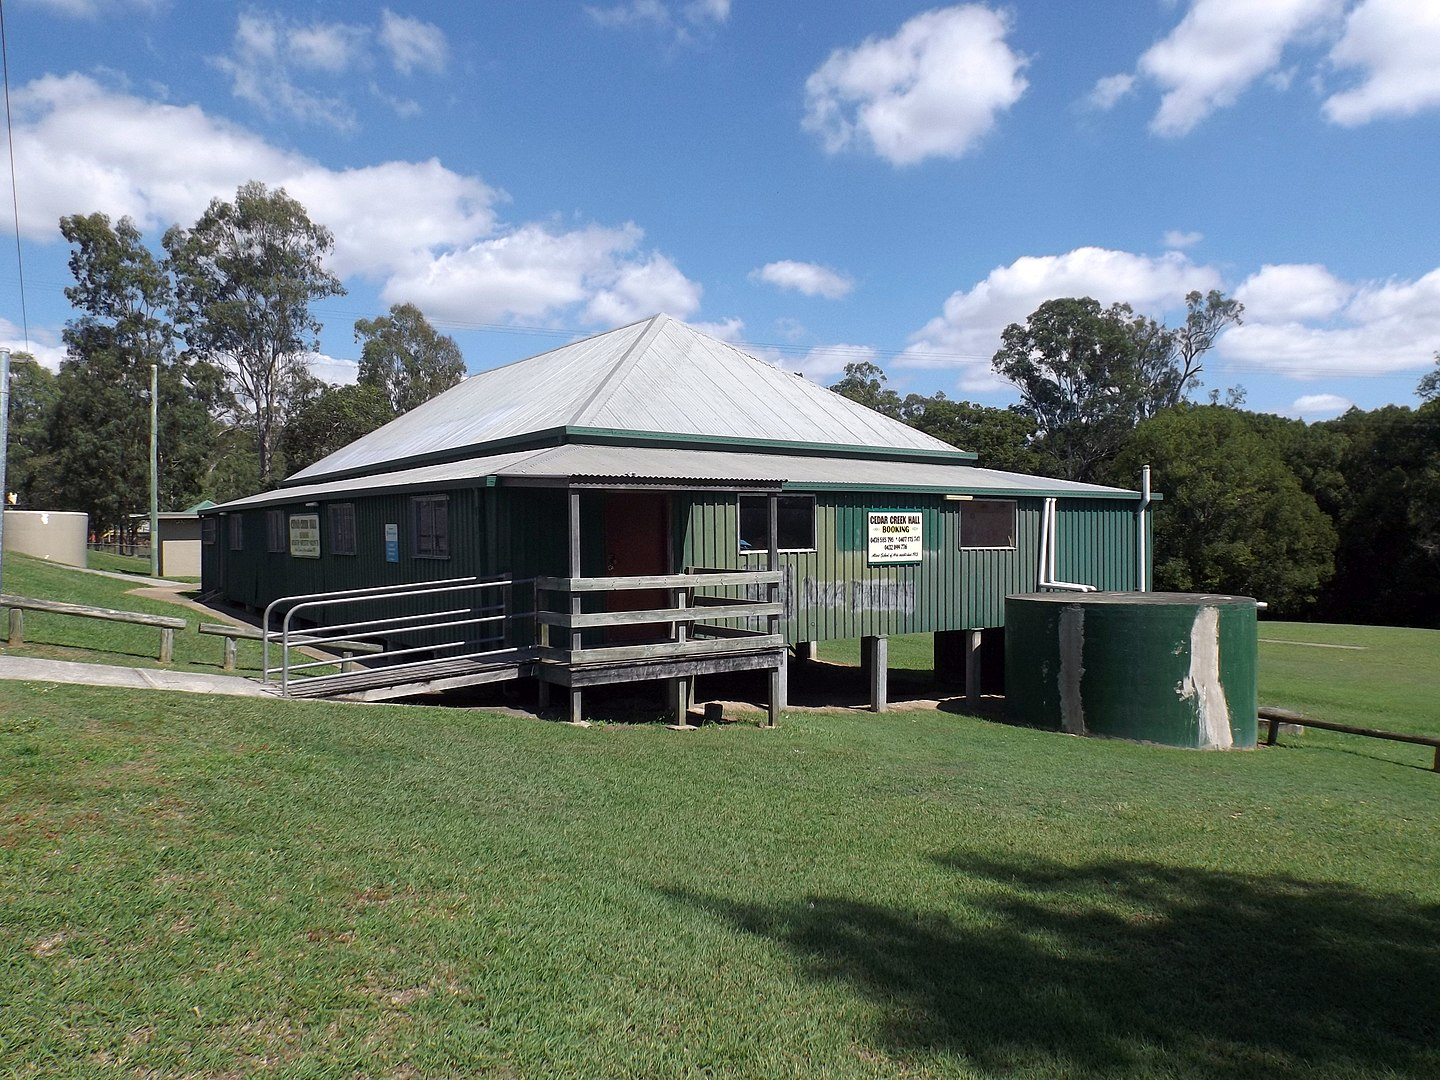 1440px-Cedar_Creek_Hall_at_Cedar_Creek,_Queensland